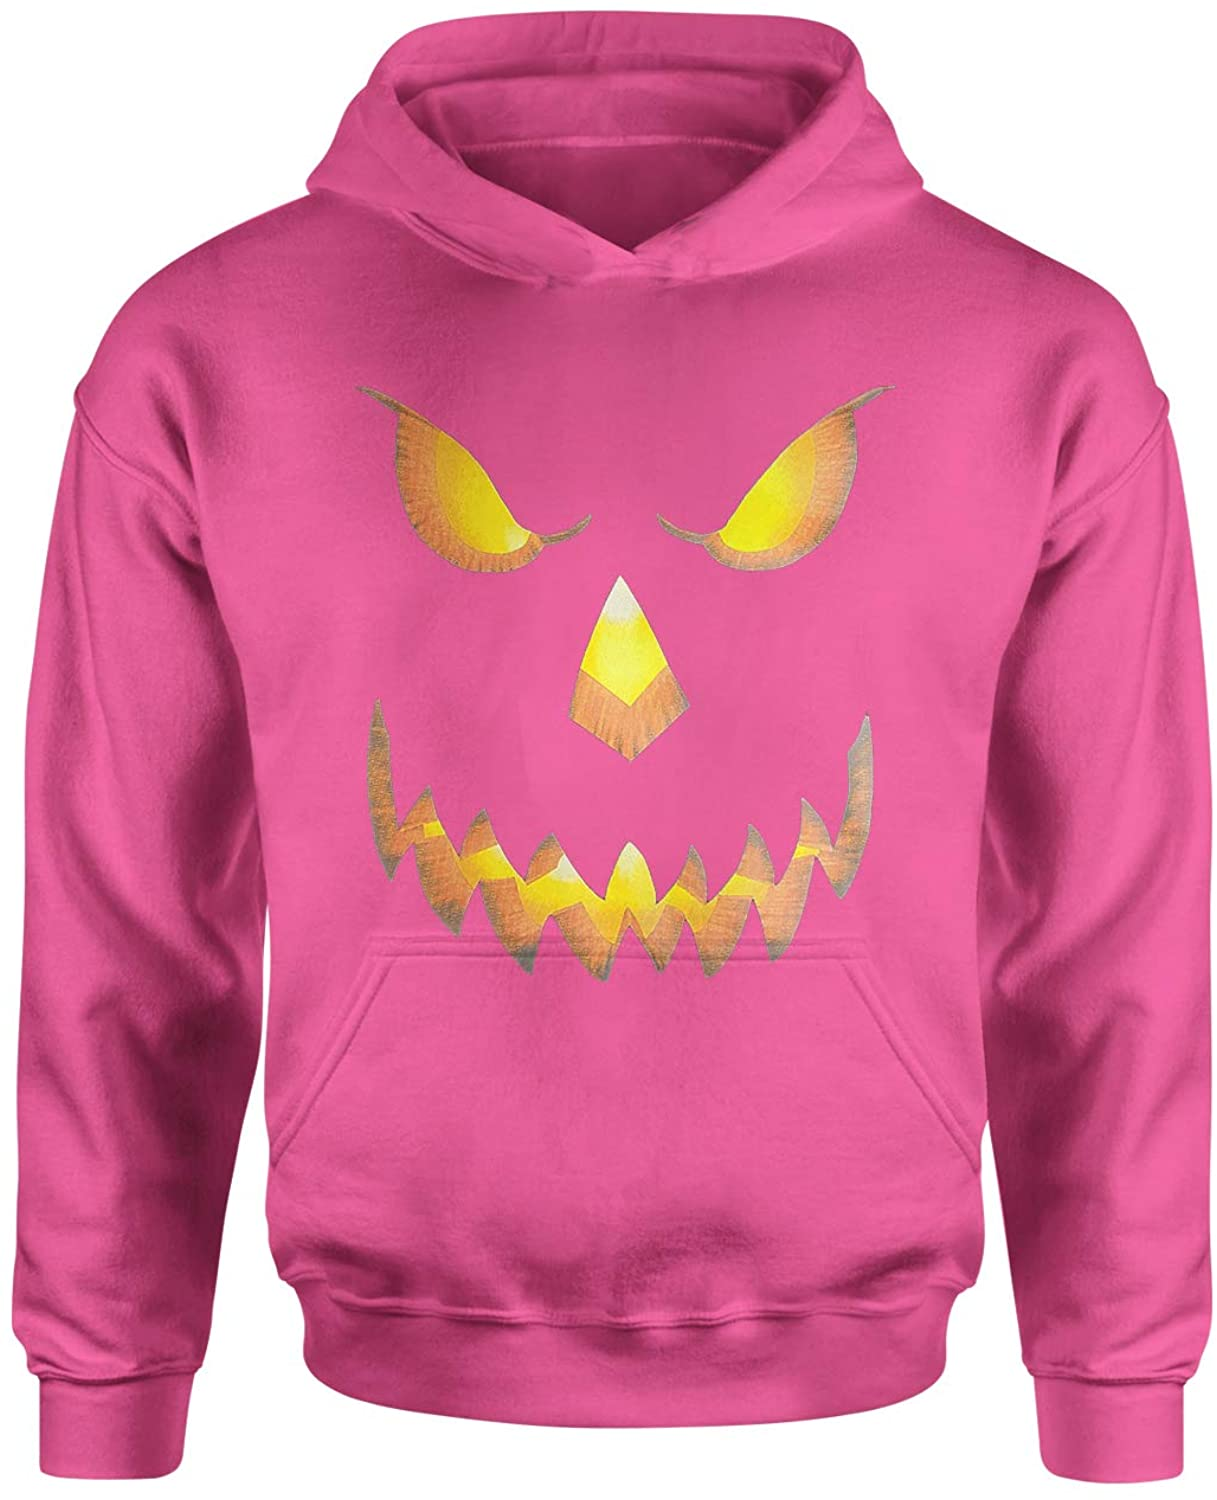 Expression Tees Jack-O-Lantern Glowing Pumpkin Face Halloween Youth-Sized Hoodie